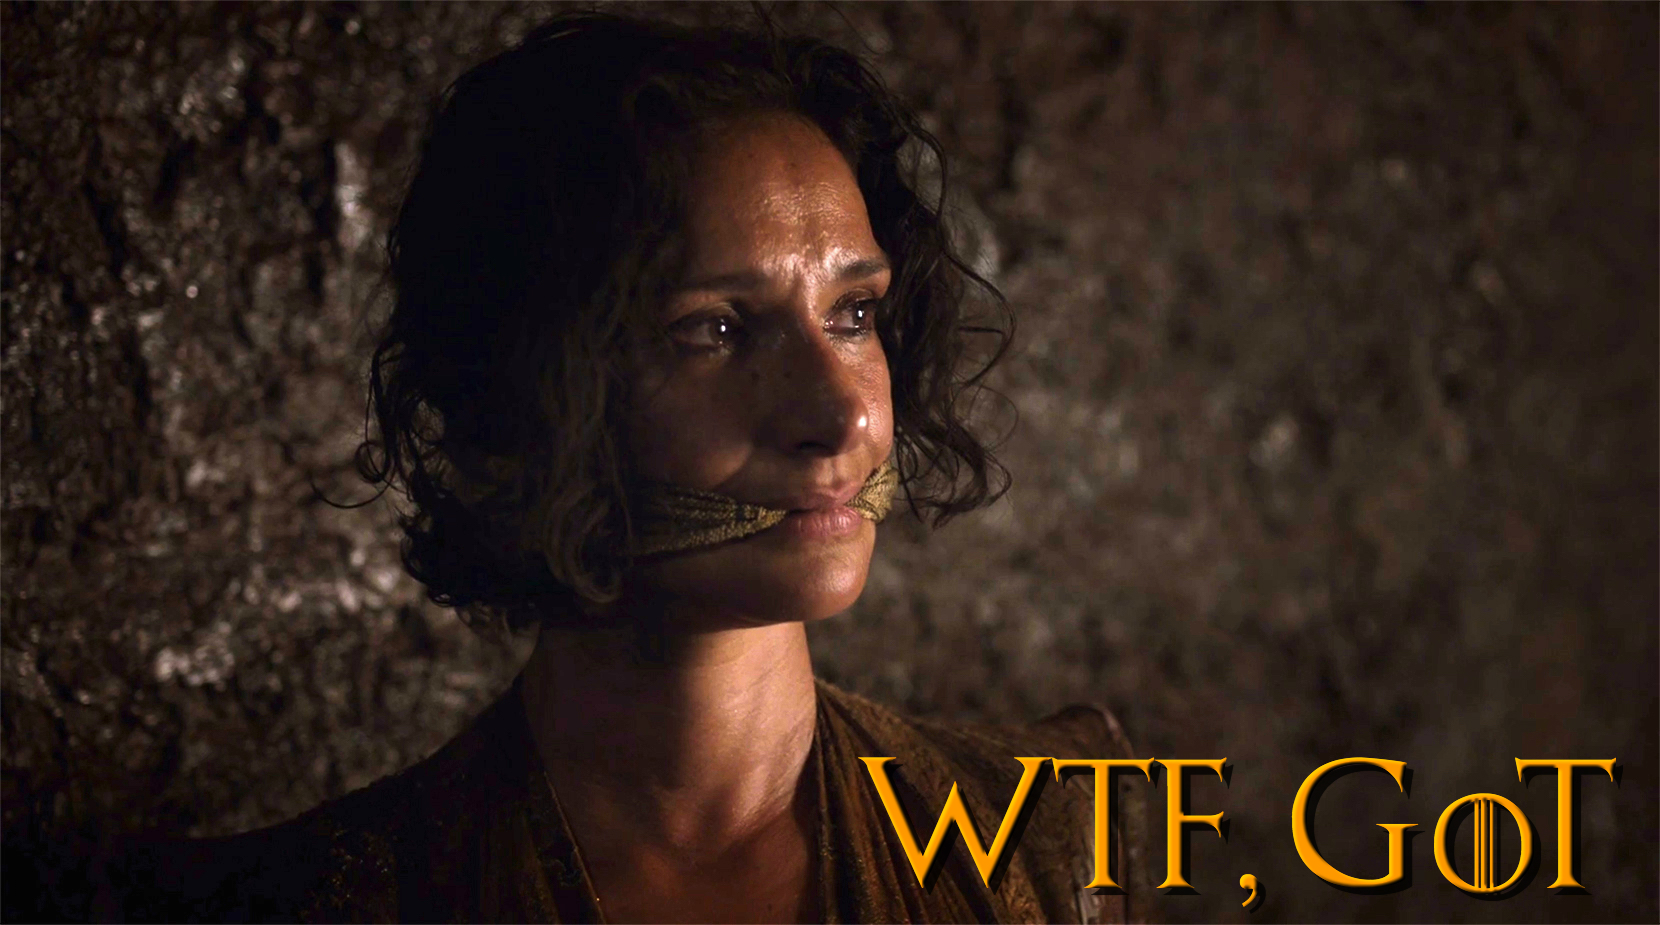 Podcast: WTF, Game of Thrones?! Ep. 3 – A Thorny Situation